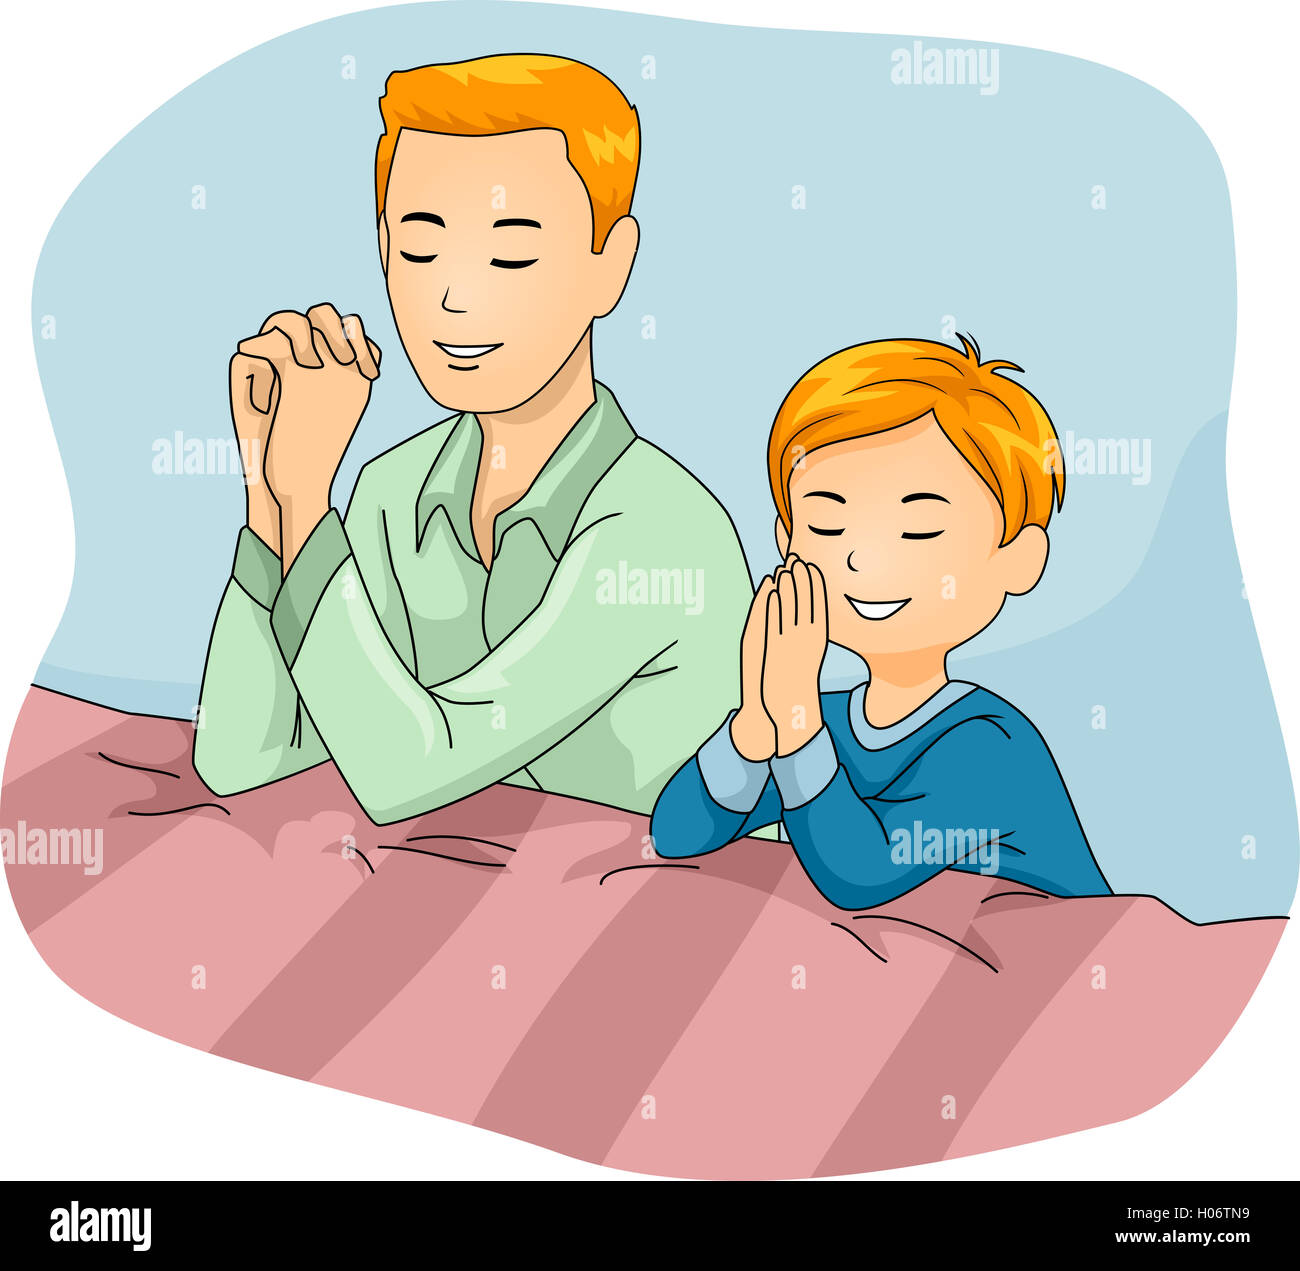 Illustration of a Father and Son Praying Together Stock ...